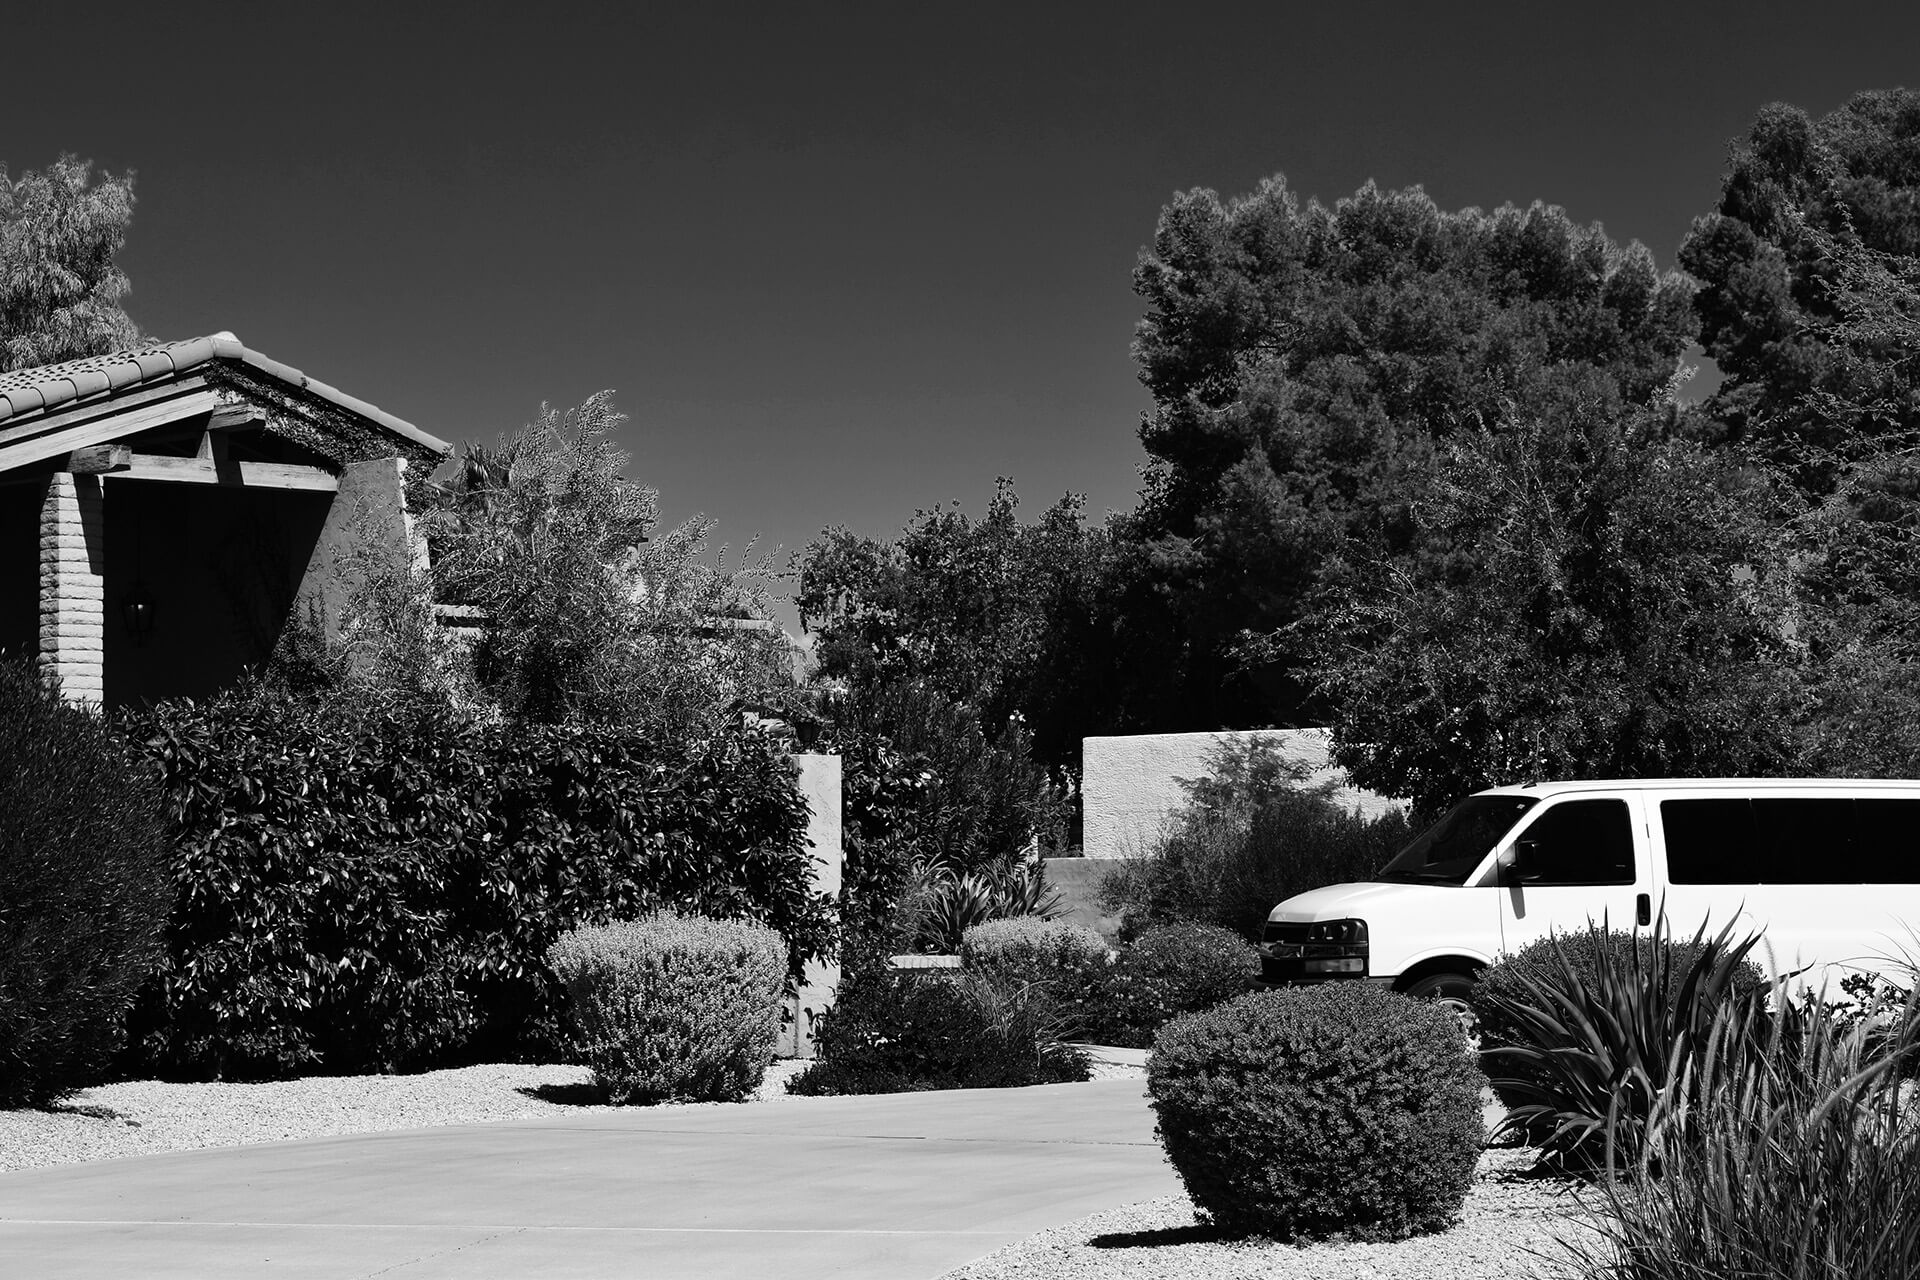 Thumb image for the post on Addiction Recovery: Too Close to Home in Paradise Valley?